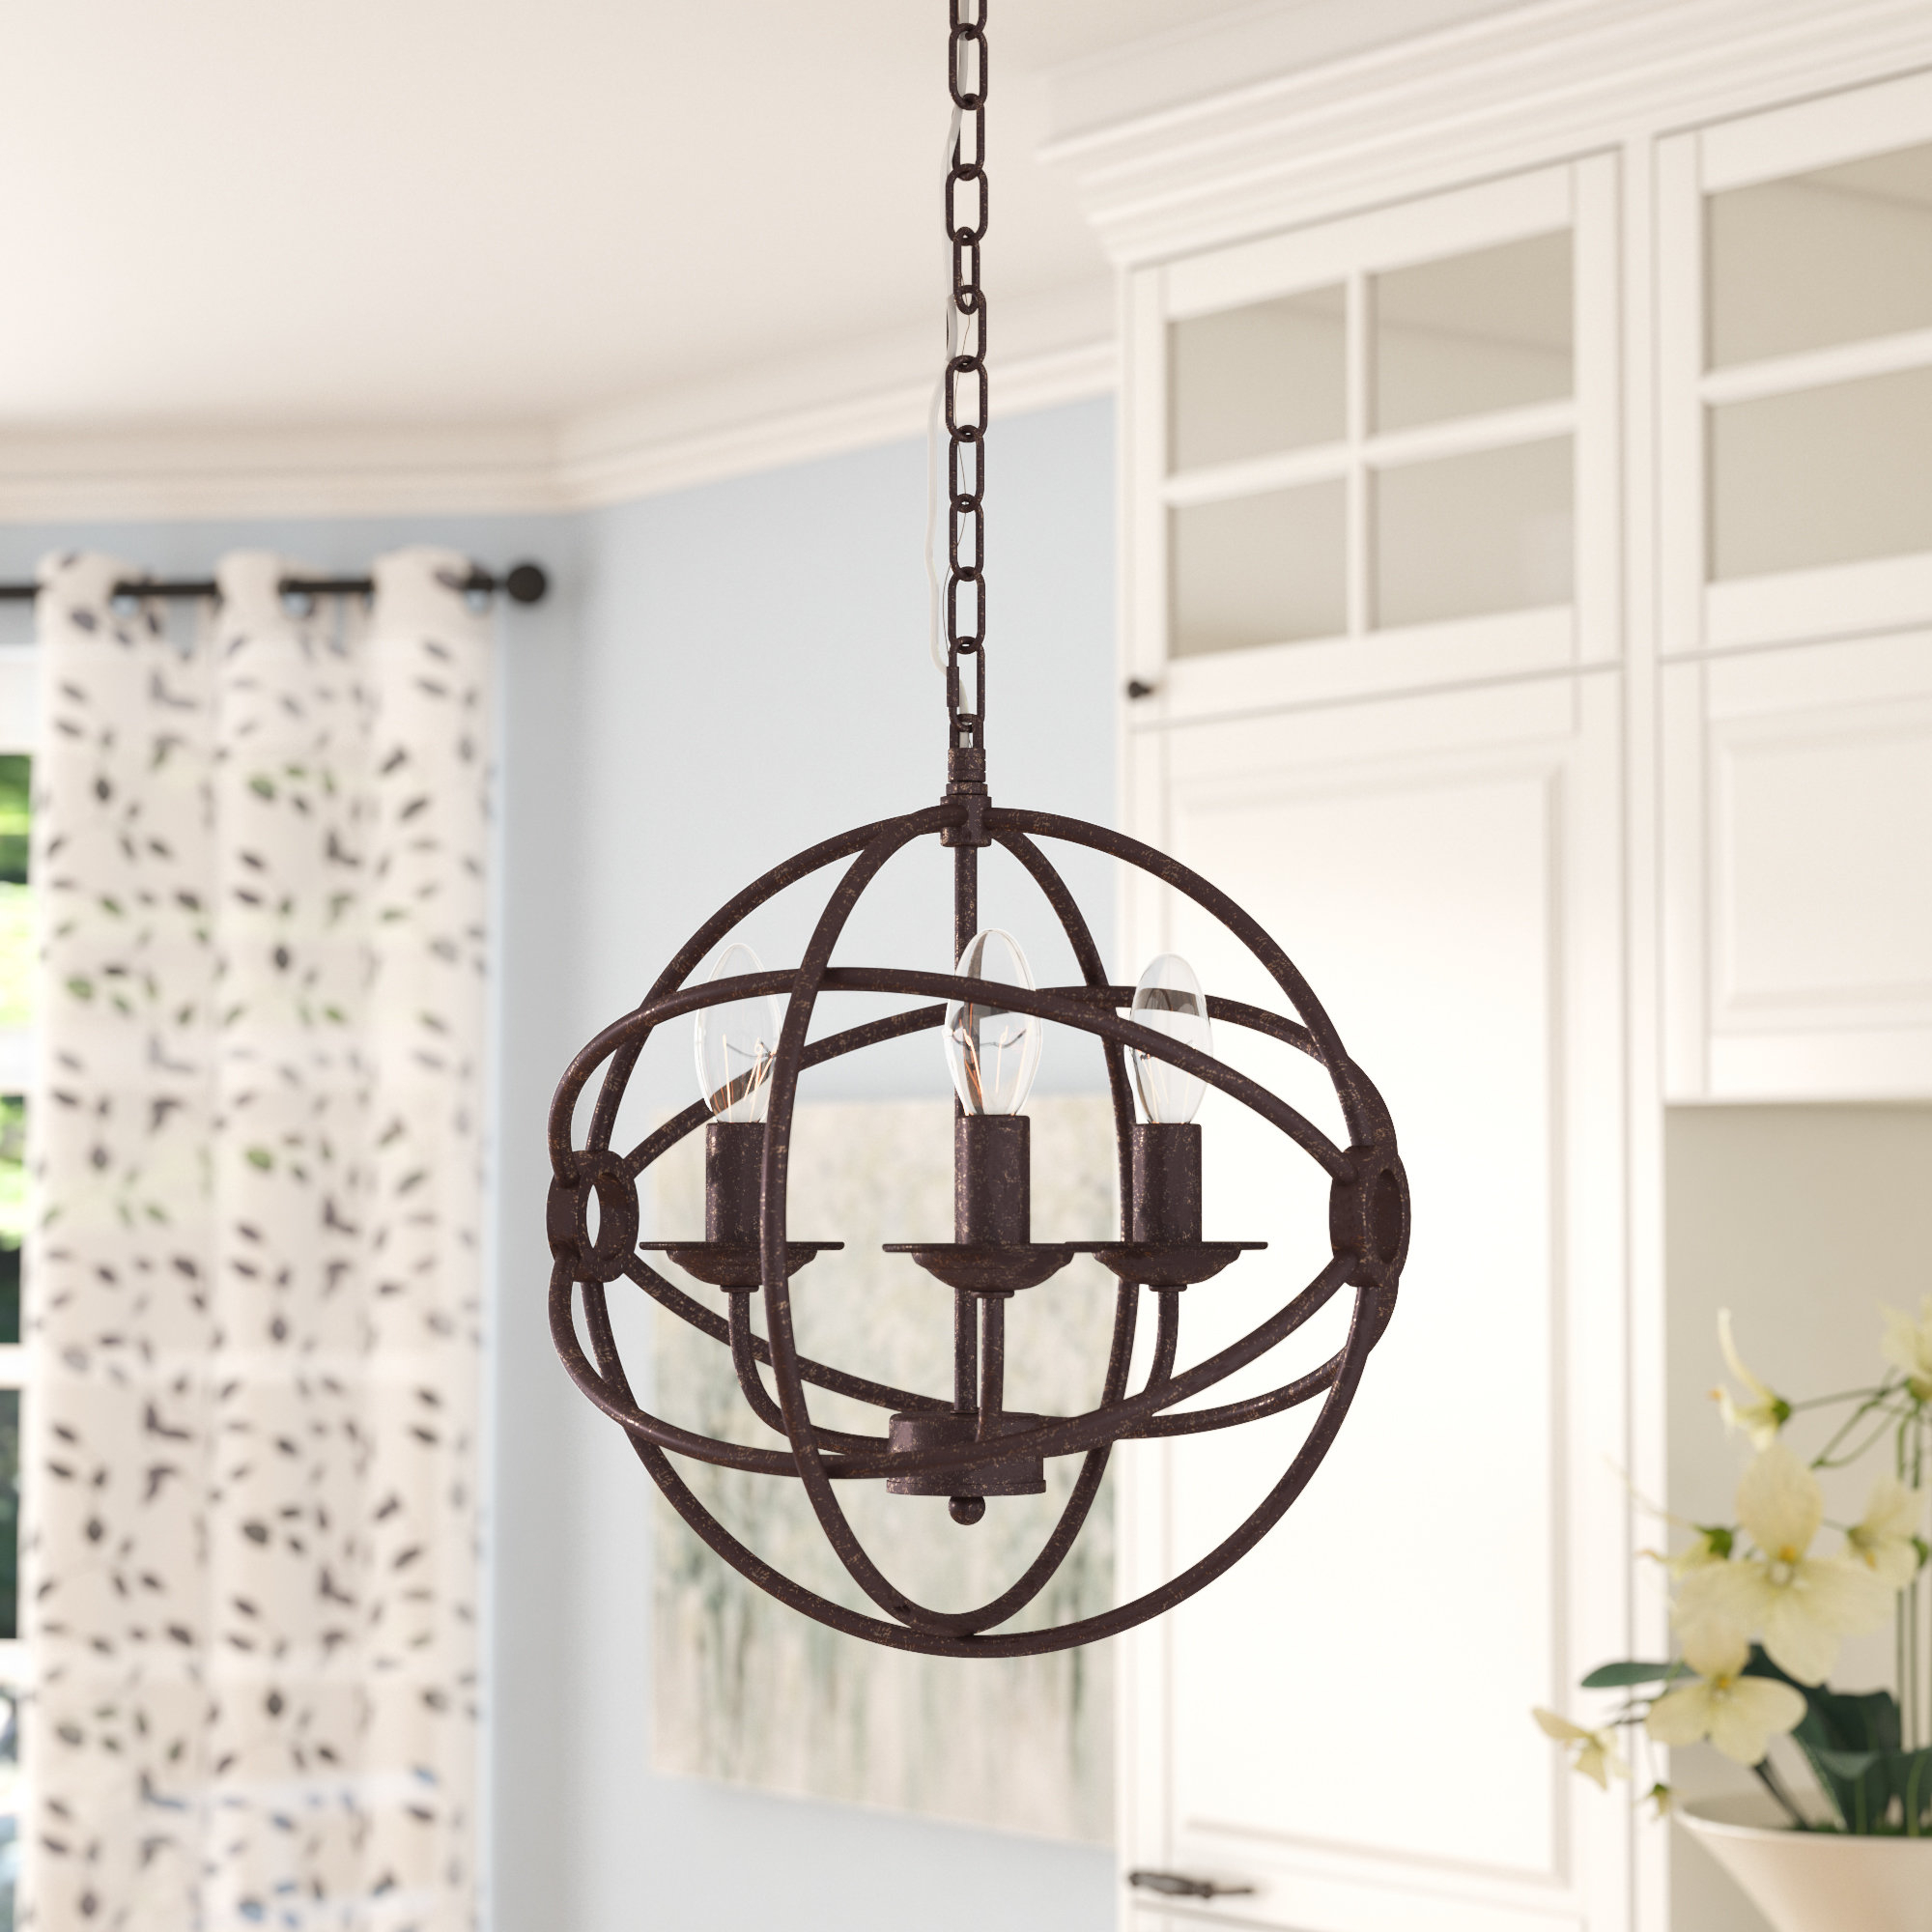 Well Liked Three Posts Shipststour 3 Light Globe Chandelier & Reviews Within La Sarre 3 Light Globe Chandeliers (View 3 of 25)